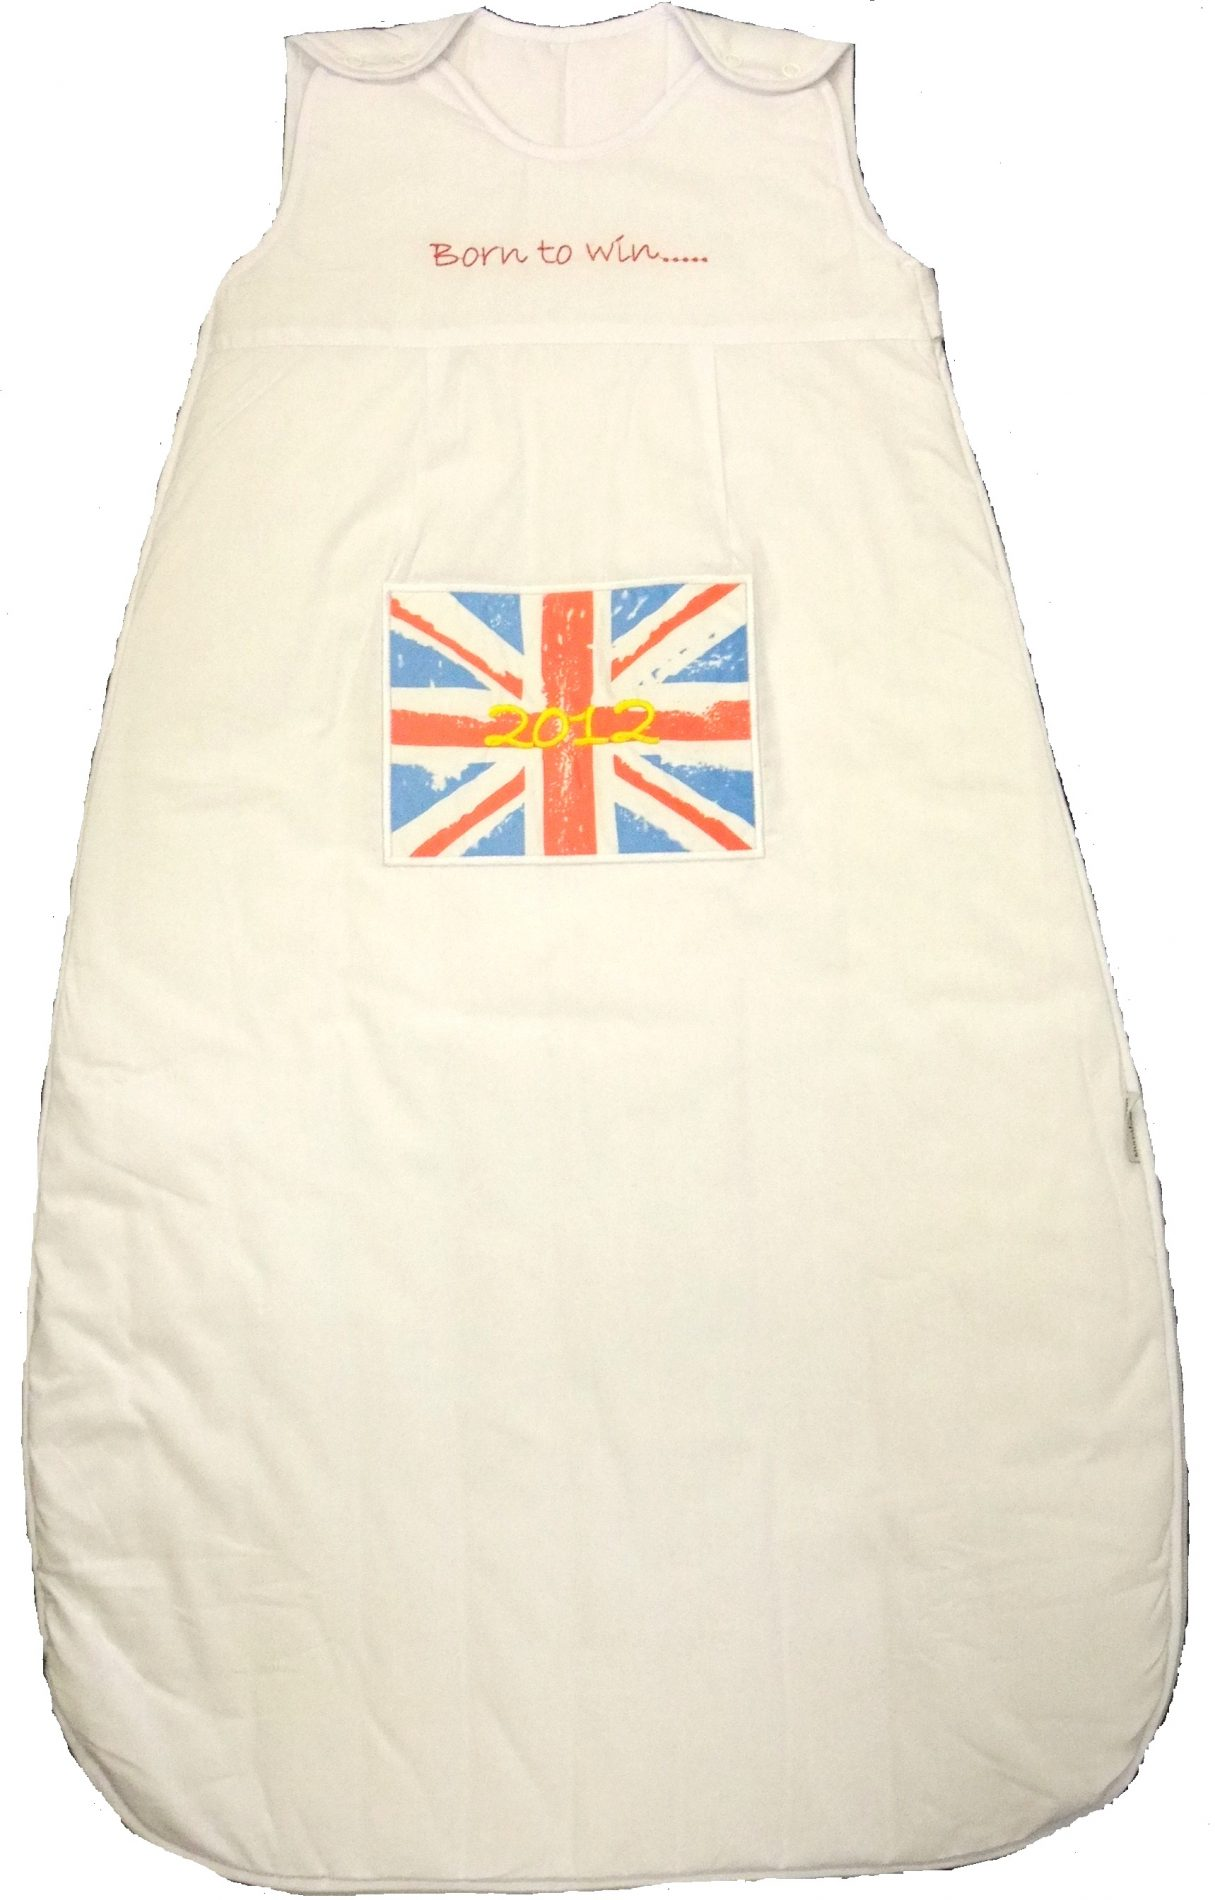 Win 1 of 10 exclusive Olympic Slumbersac sleeping bags!